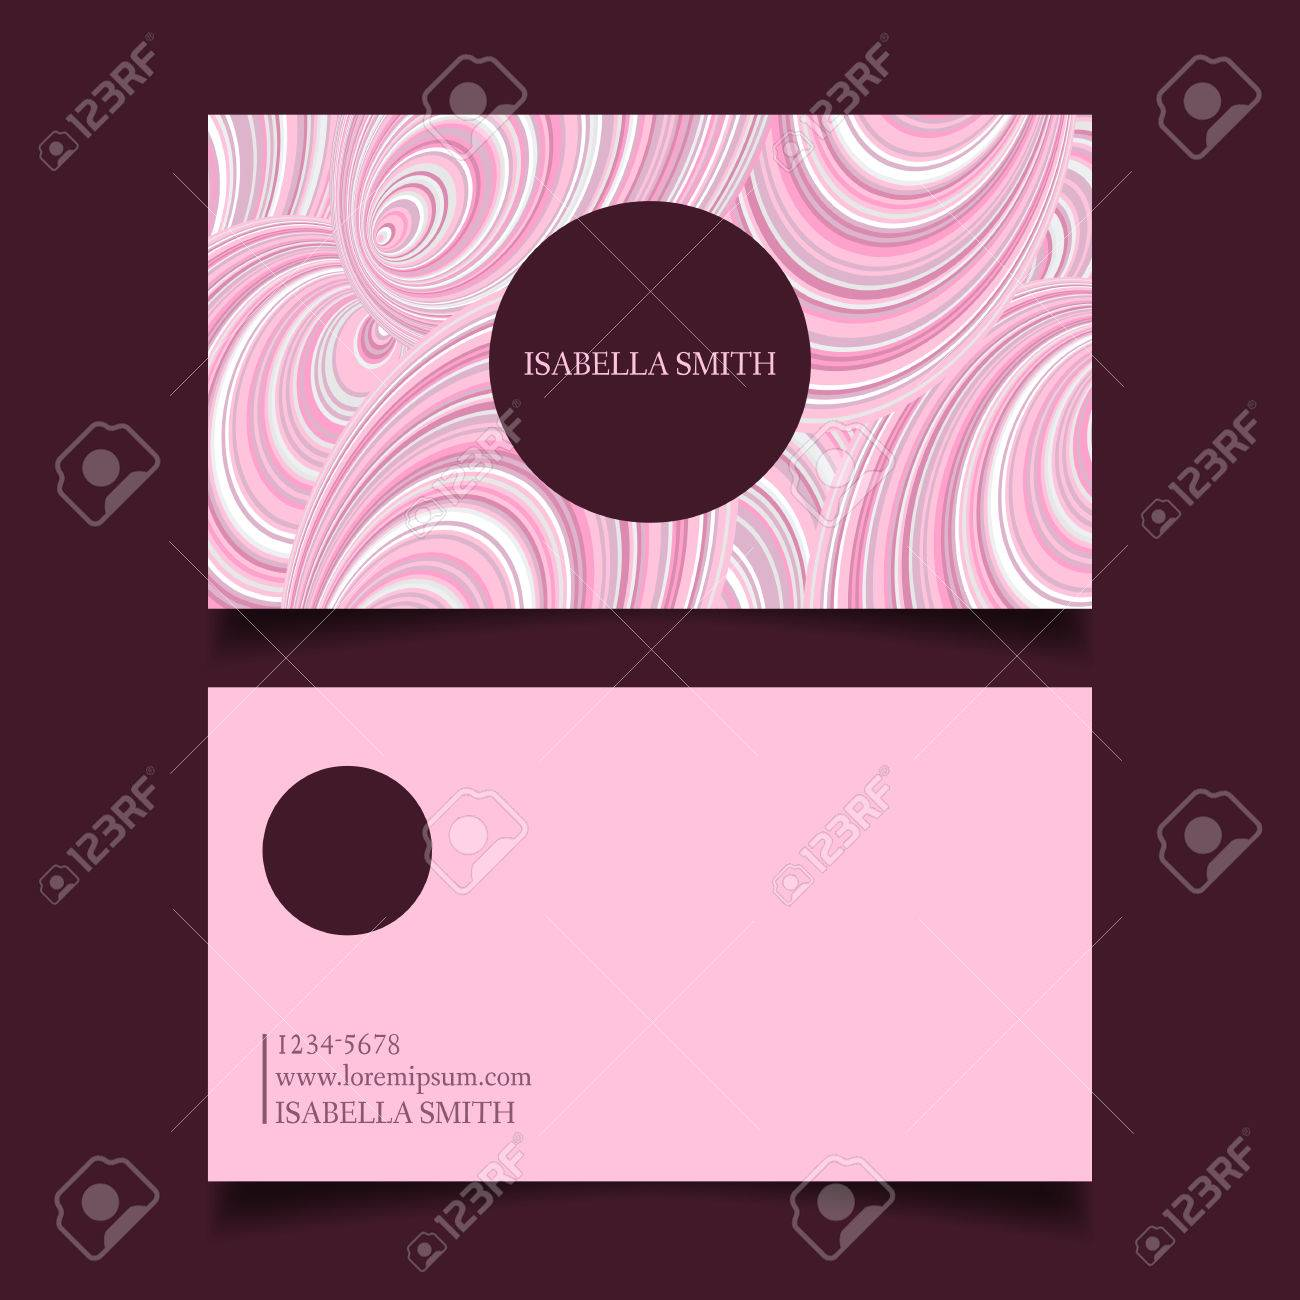 Business card template editable gently pink color palette design business card template editable gently pink color palette design vector stock vector wajeb Gallery